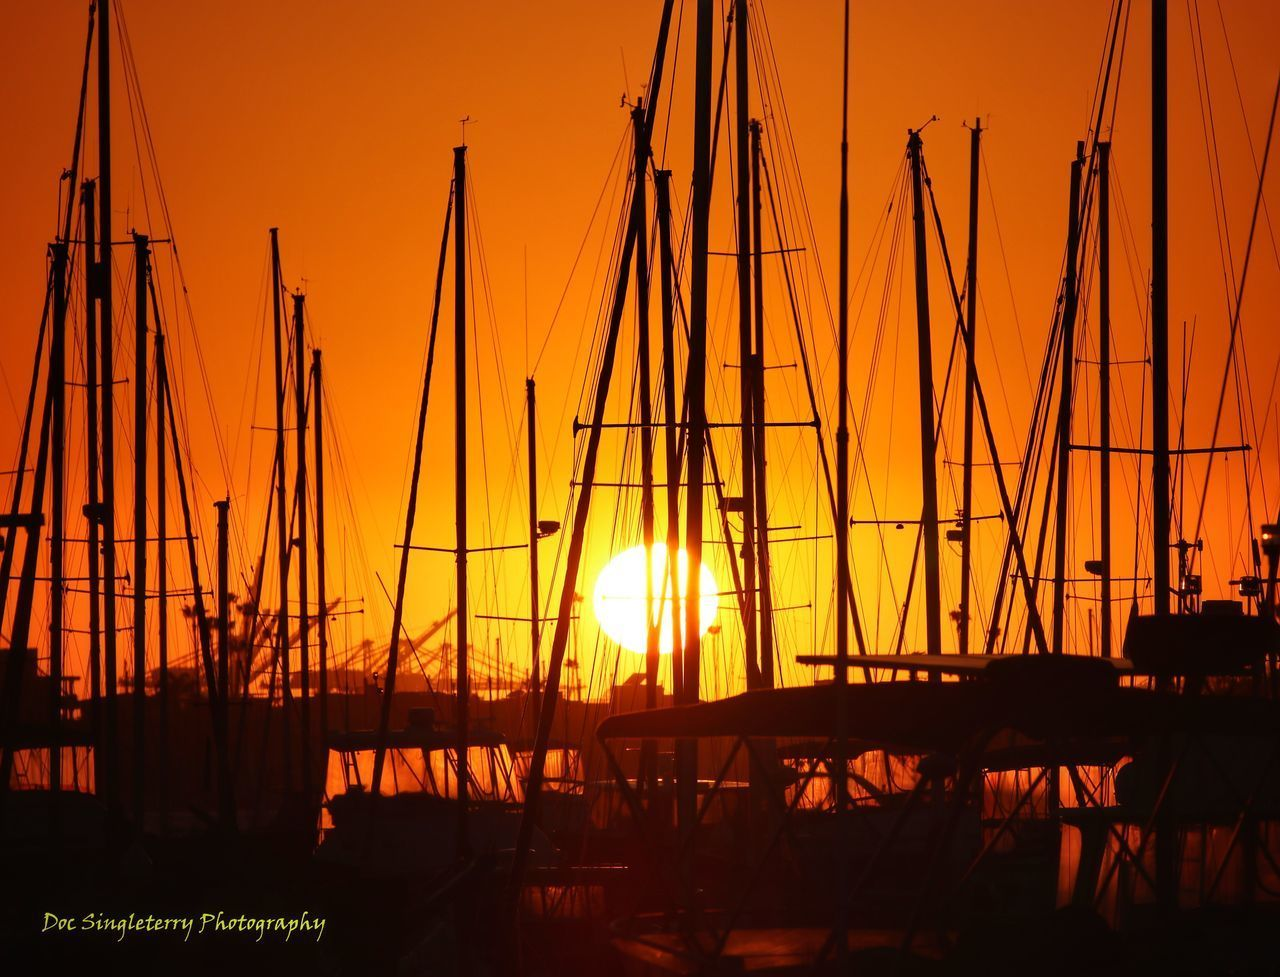 Until Tomorrow We Rest Sunset Scenics Silhouette Sunlight Beauty In Nature Sunrise_sunsets_aroundworld The Great Outdoors - 2017 EyeEm Awards Live For The Story Sunset Silhouettes Harbor Tranquility Marina Sailing Californialove Twilightscapes Sailboats Southern California Sunsets Sunrise Silhouette Outdoors Sailing Ships